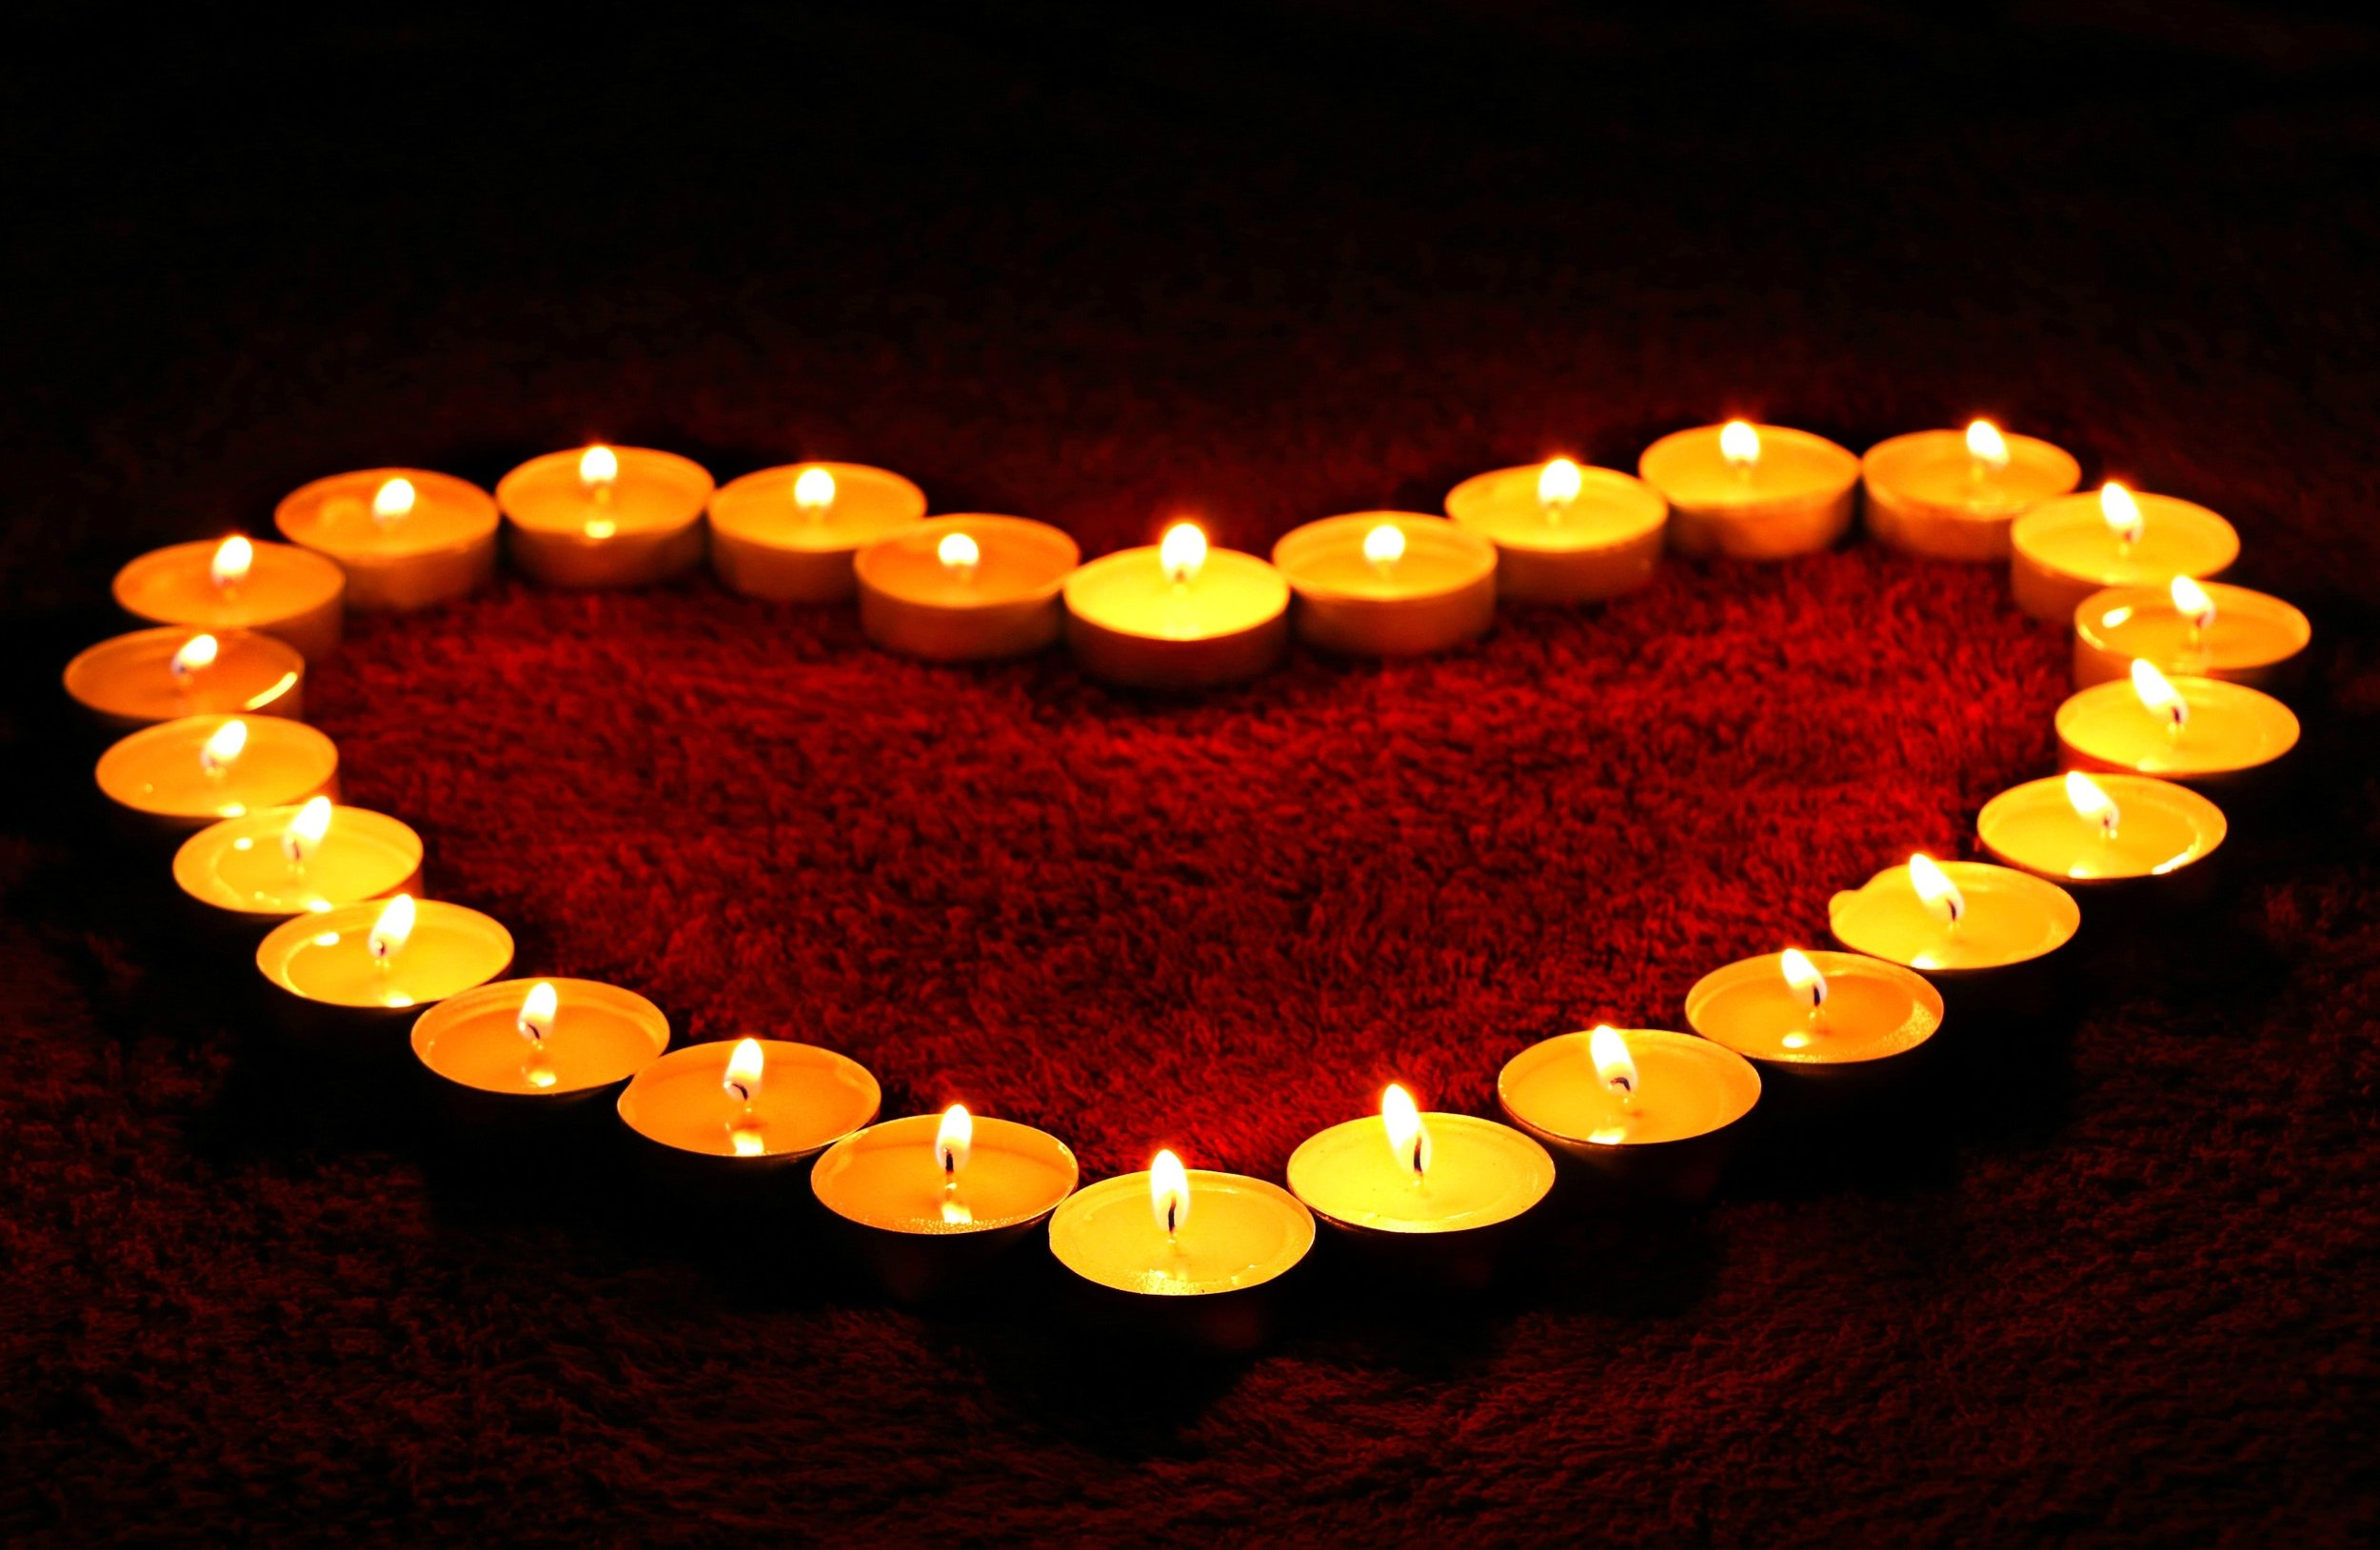 burnt-candle-candlelight-207997.jpg